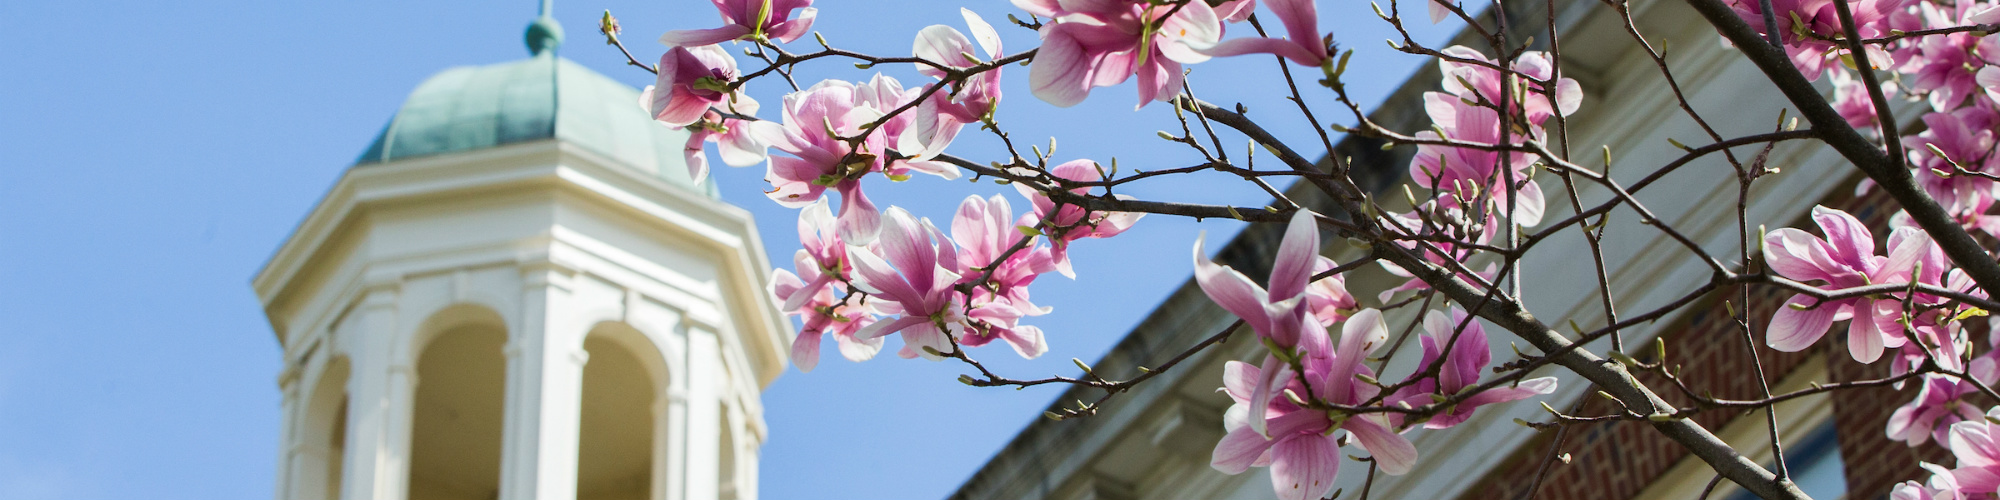 Pink flowers on tree branch in front of cupola of building